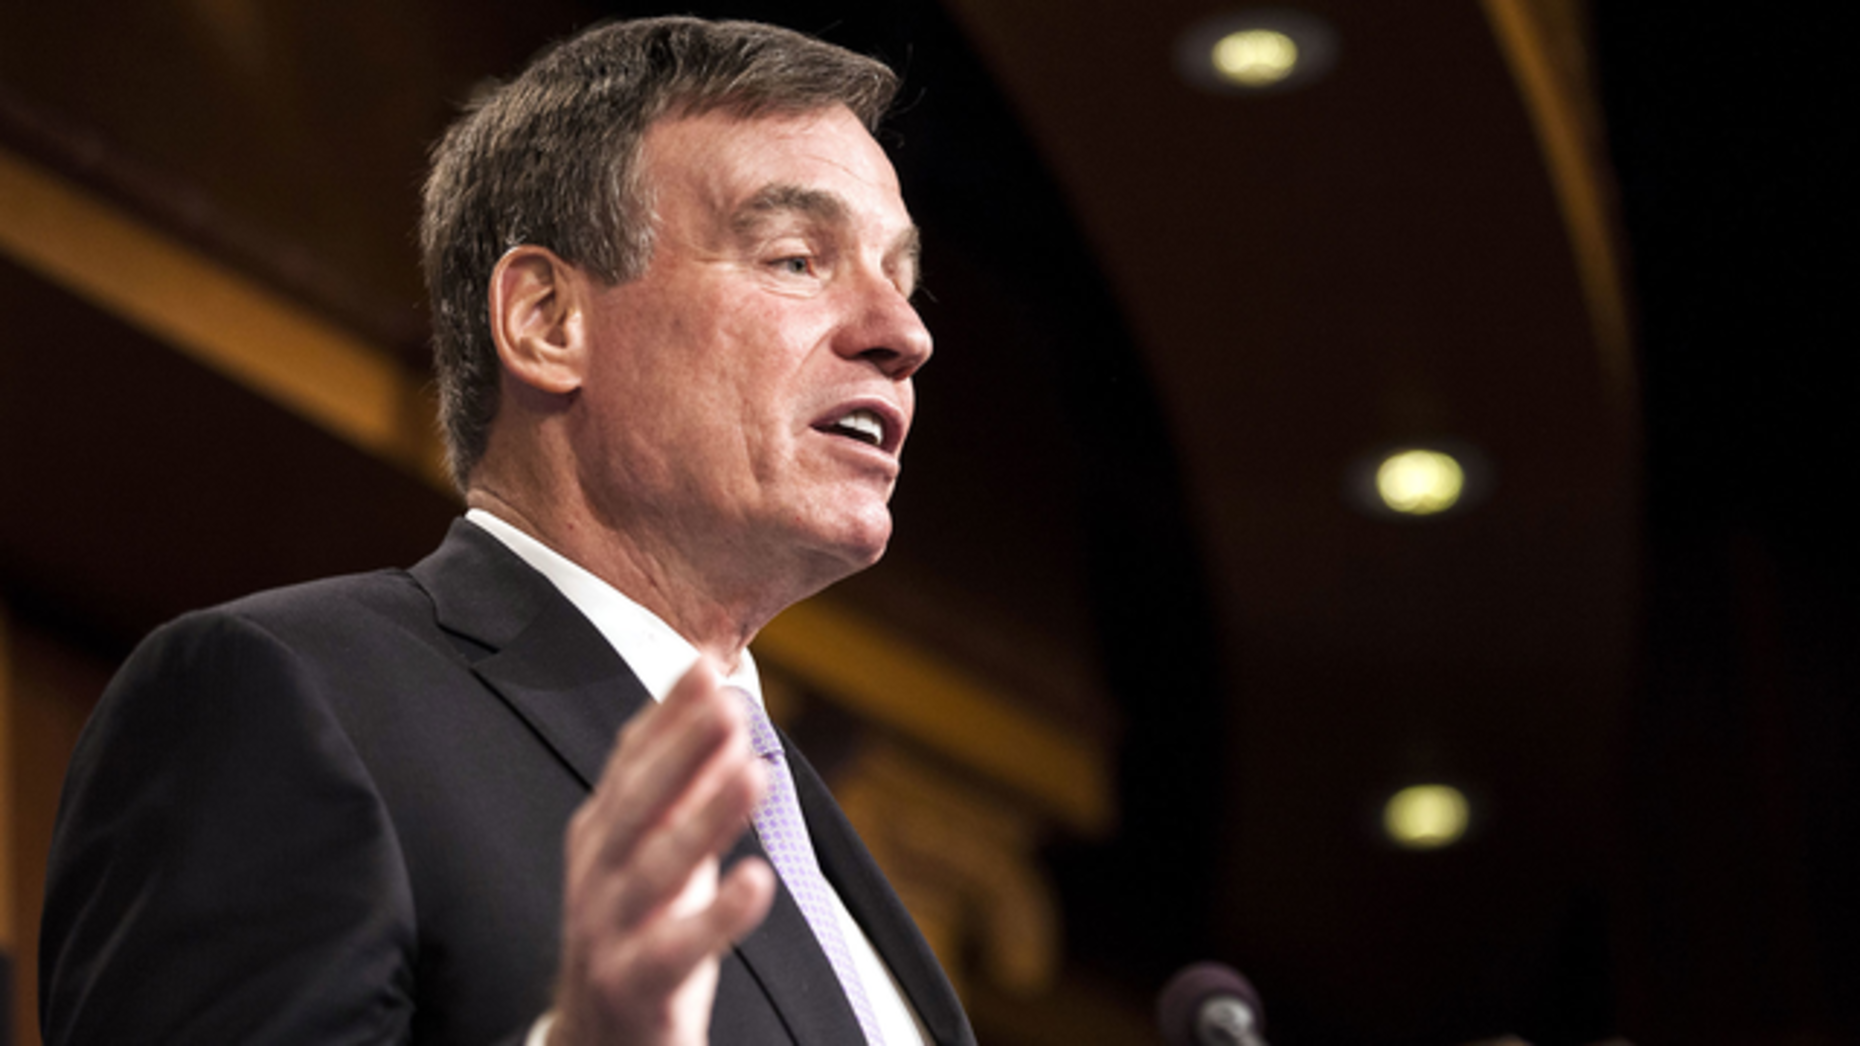 Virginia Sen. Mark Warner, during a news conference  in Washington, D.C., on Oct. 19. Photo: Bloomberg